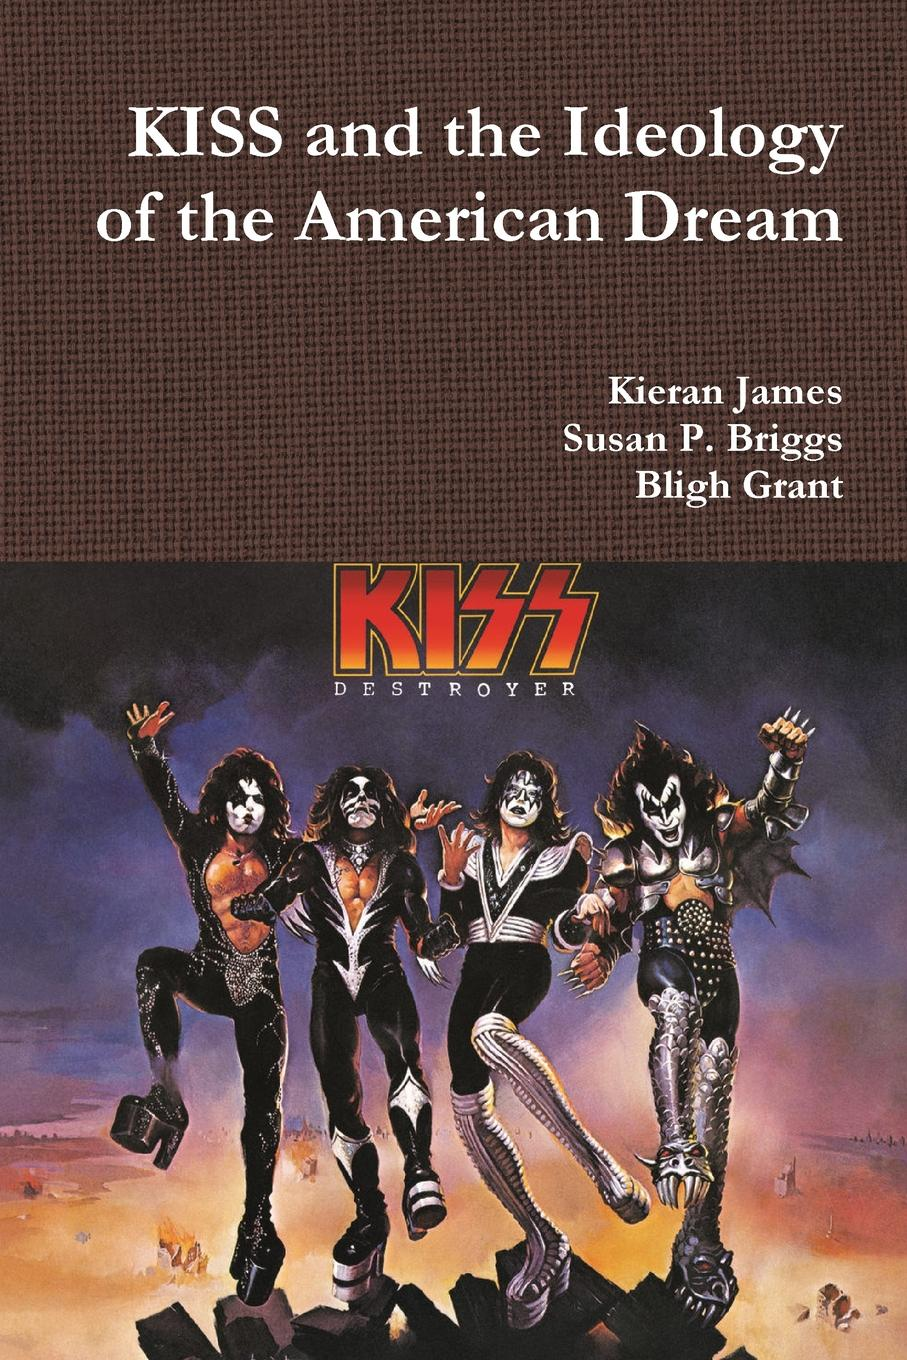 Kieran James, Susan P. Briggs, Bligh Grant KISS and the Ideology of the American Dream susan mallery a kiss in the snow